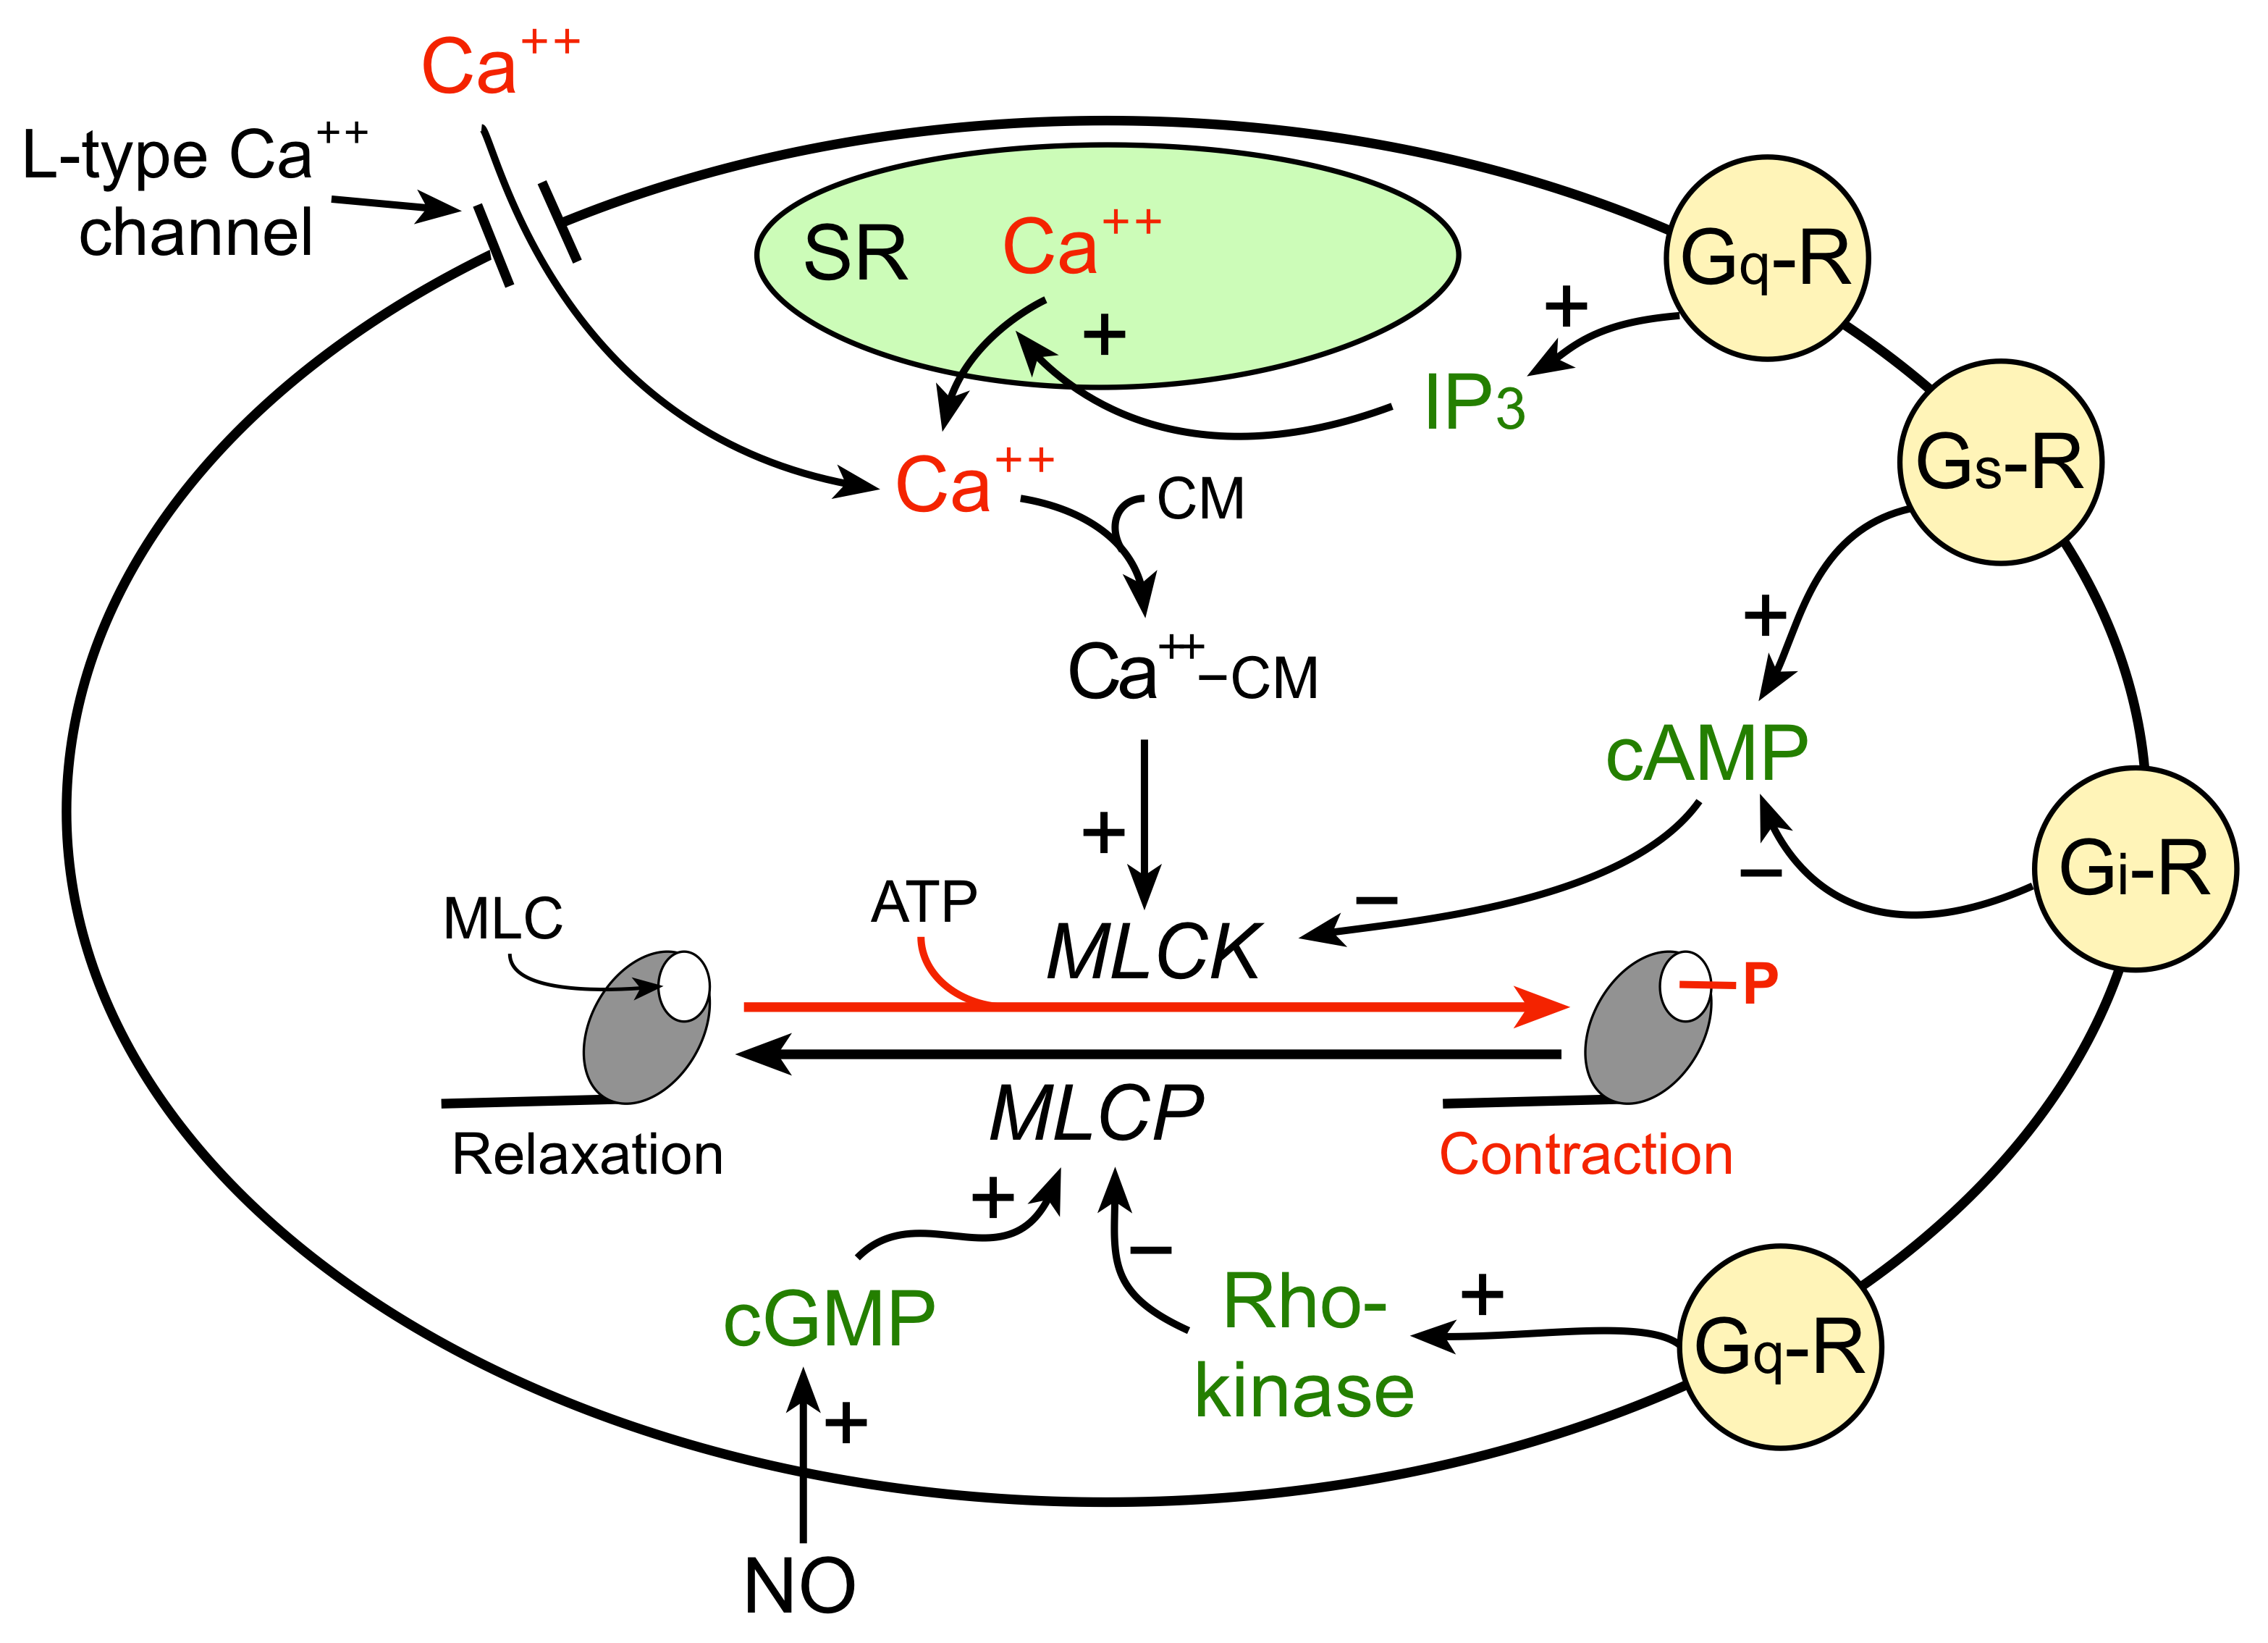 an example of a contraction